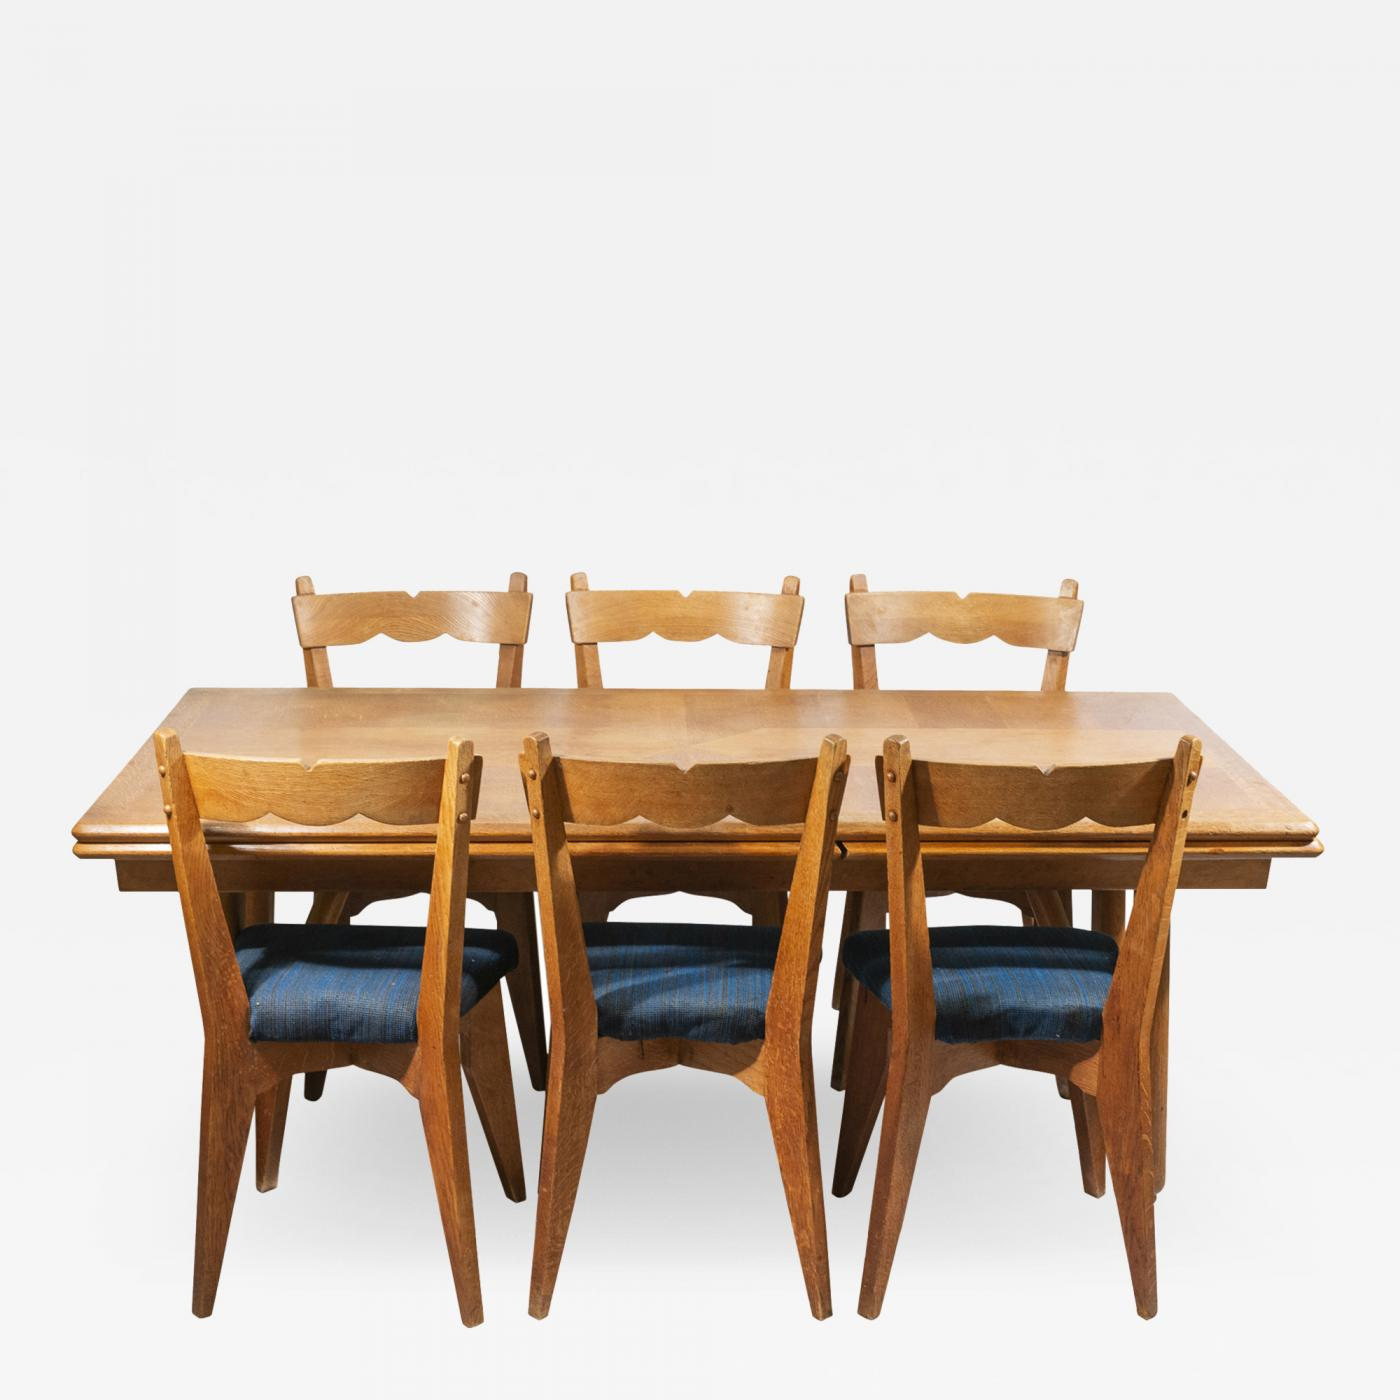 Miraculous Guillerme Et Chambron Guillerme Chambron Dinner Table And Set Of Six Chairs France Circa 1950 Ibusinesslaw Wood Chair Design Ideas Ibusinesslaworg